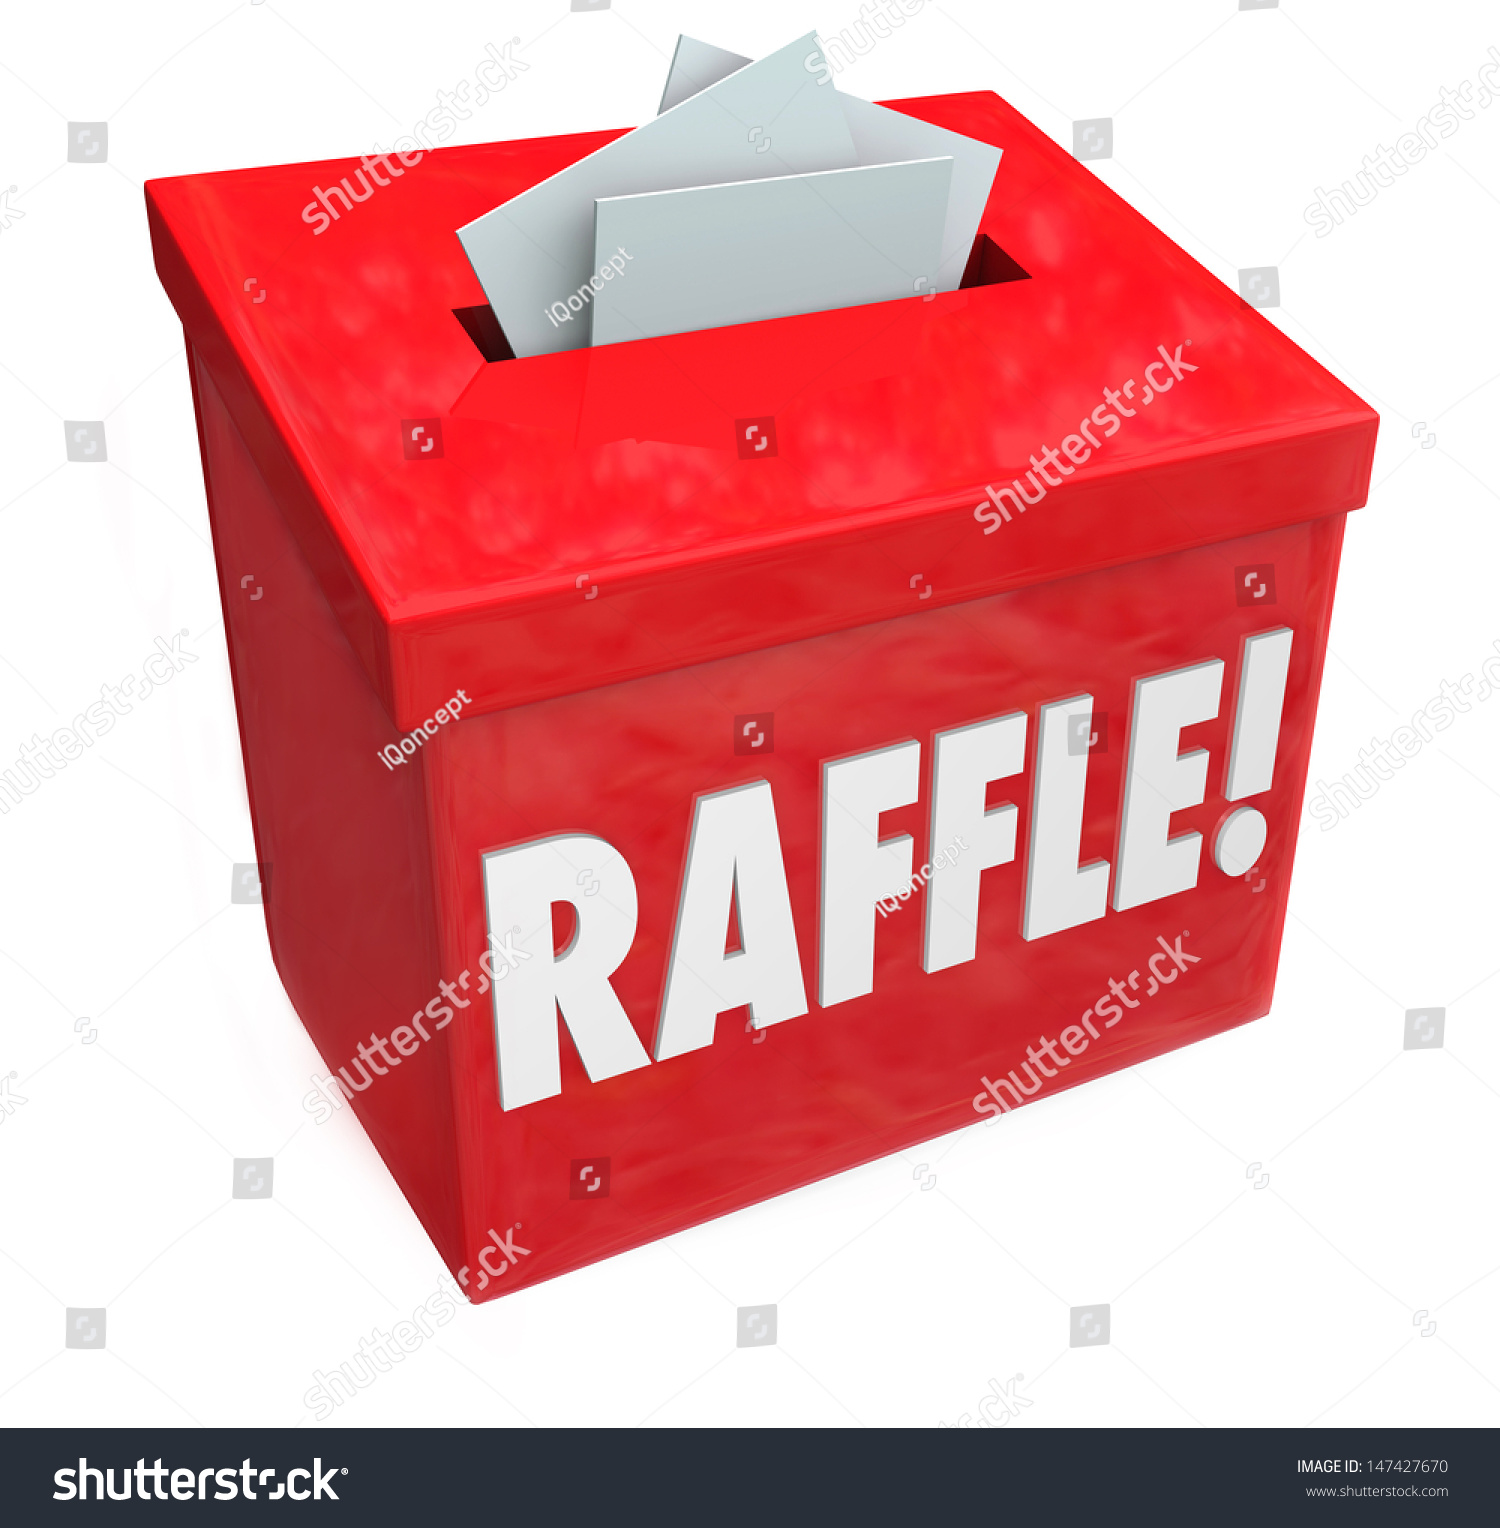 dropping tickets inside raffle box stock illustration dropping tickets inside a raffle box for a 50 50 or other fundraising drawing hoping